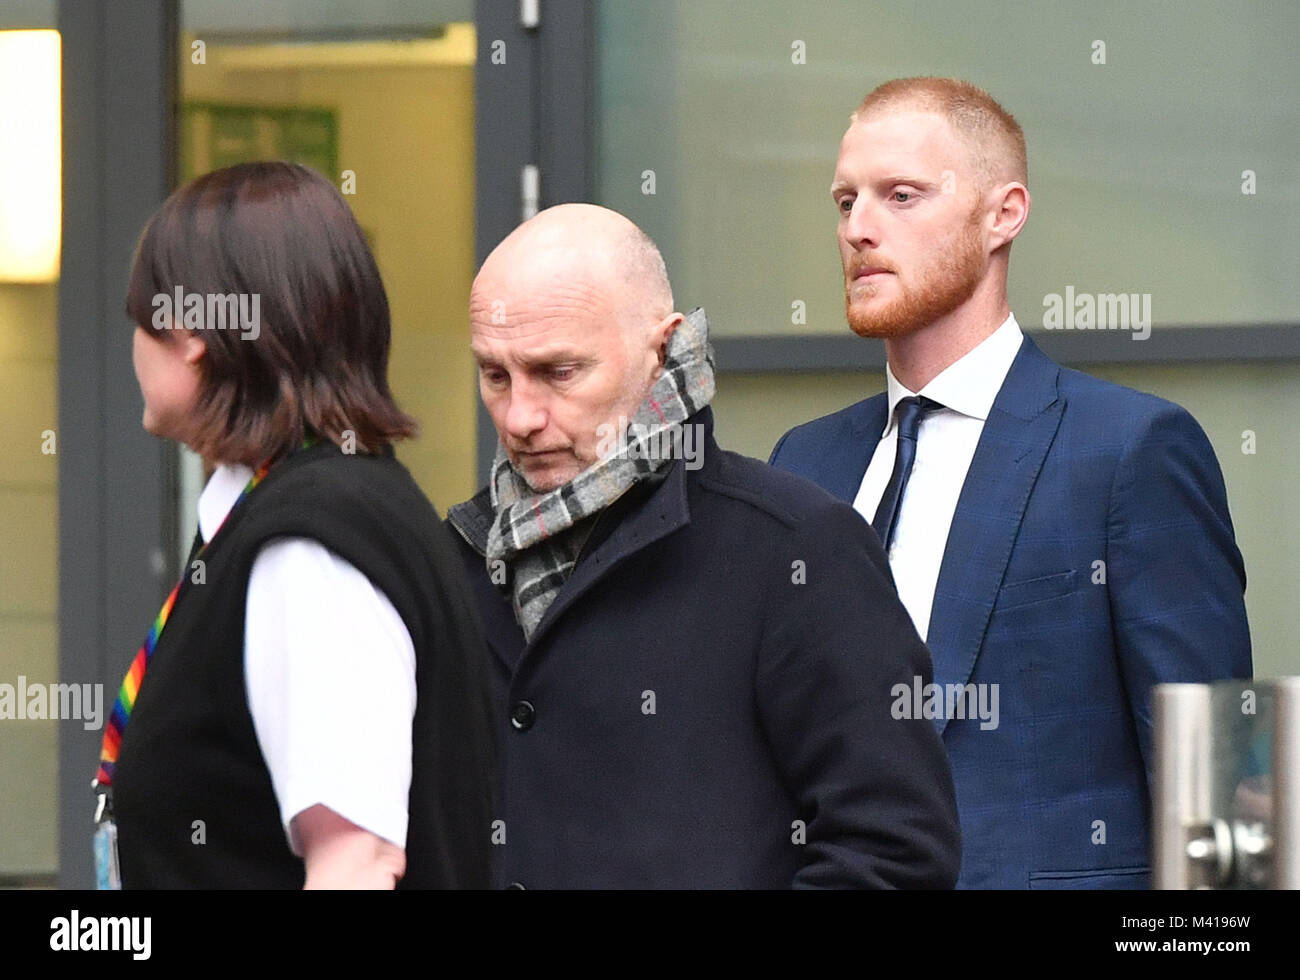 England and Durham cricketer Ben Stokes, 26, (right) leaving Bristol Magistrates' Court, where he was told he - Stock Image